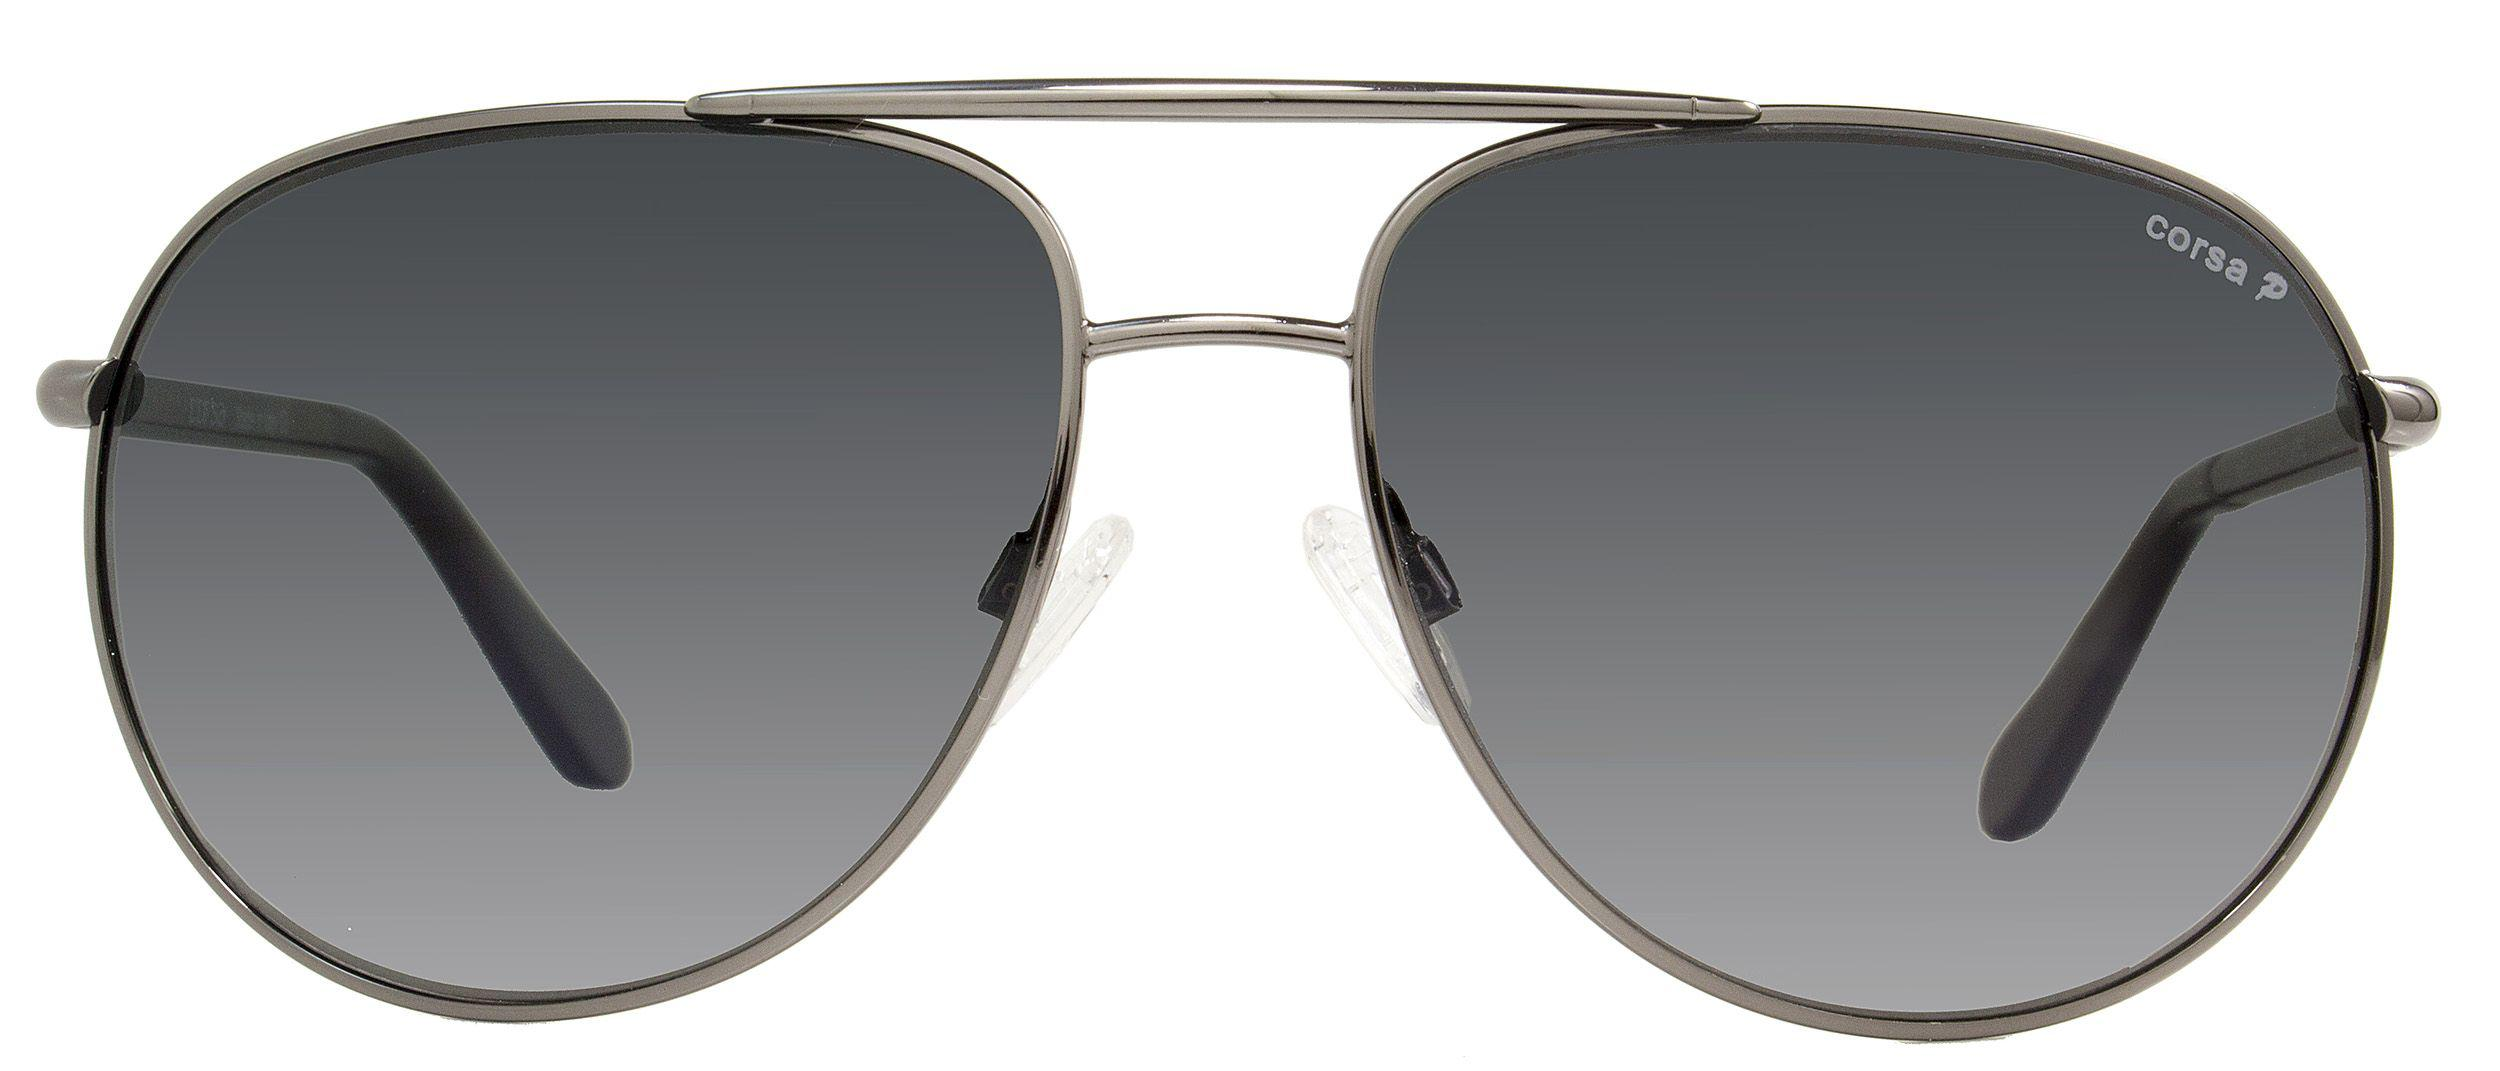 2c3e2e26cf1 ... Corsa Aviator Sunglasses Marko C06 Gunmetal carbon Fiber Polarized for  Men. View fullscreen